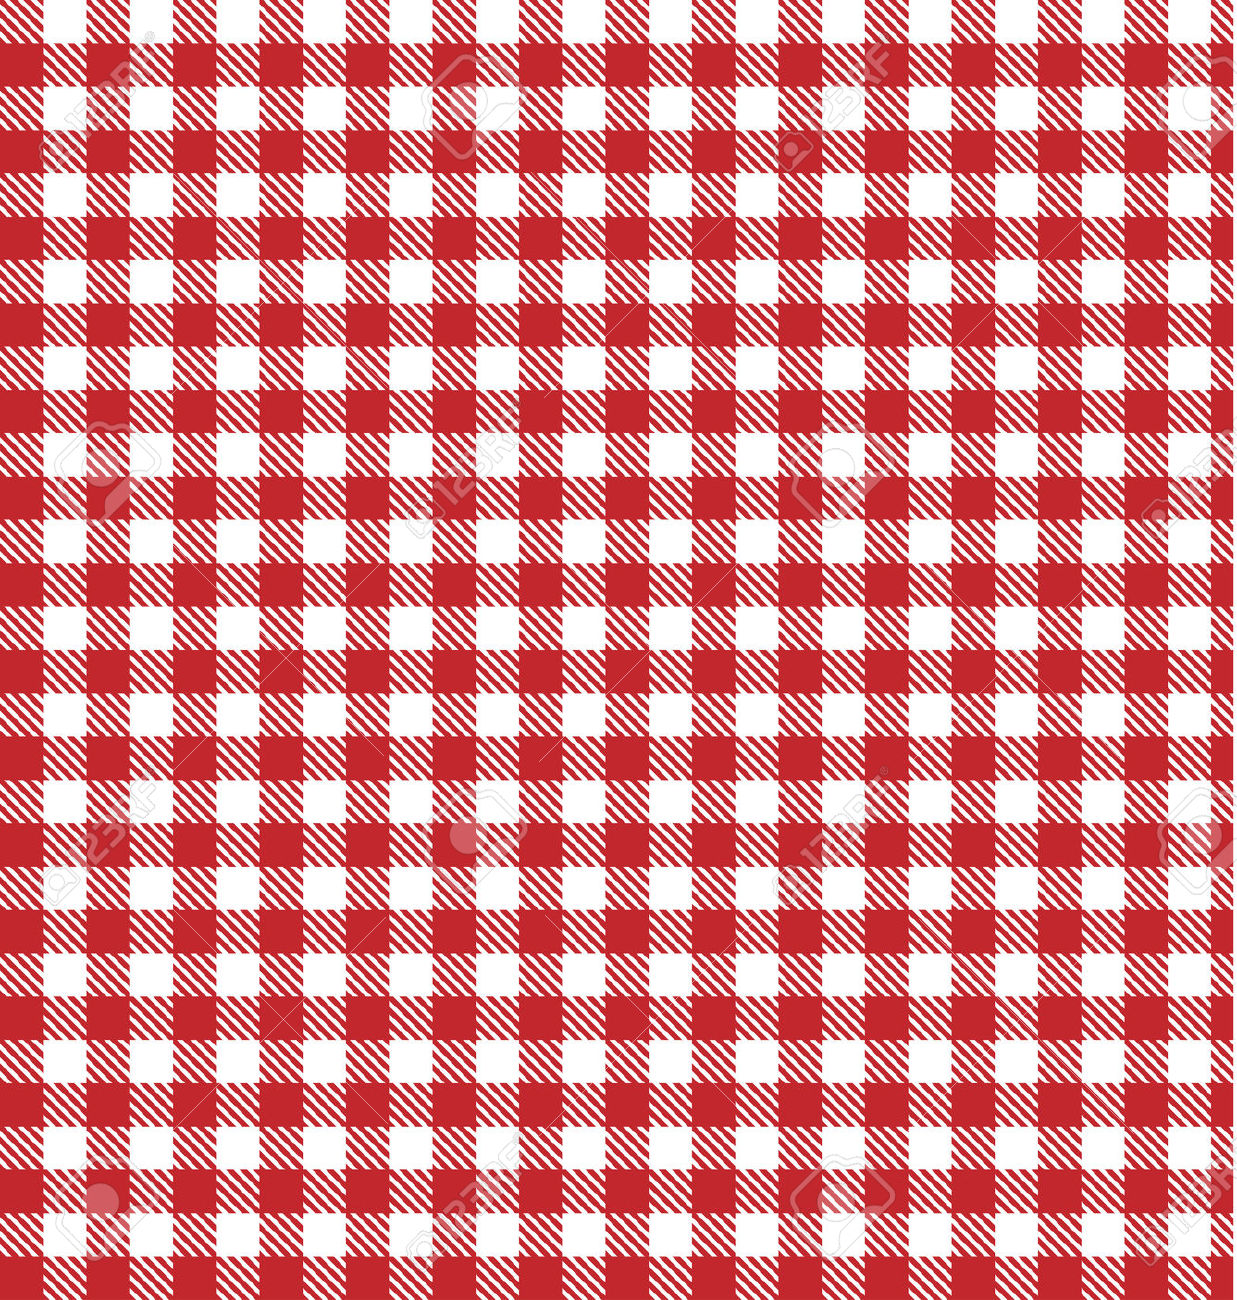 Red checkered background clipart clipground - Red Checkered Background Clipart Clipground 1237x1300